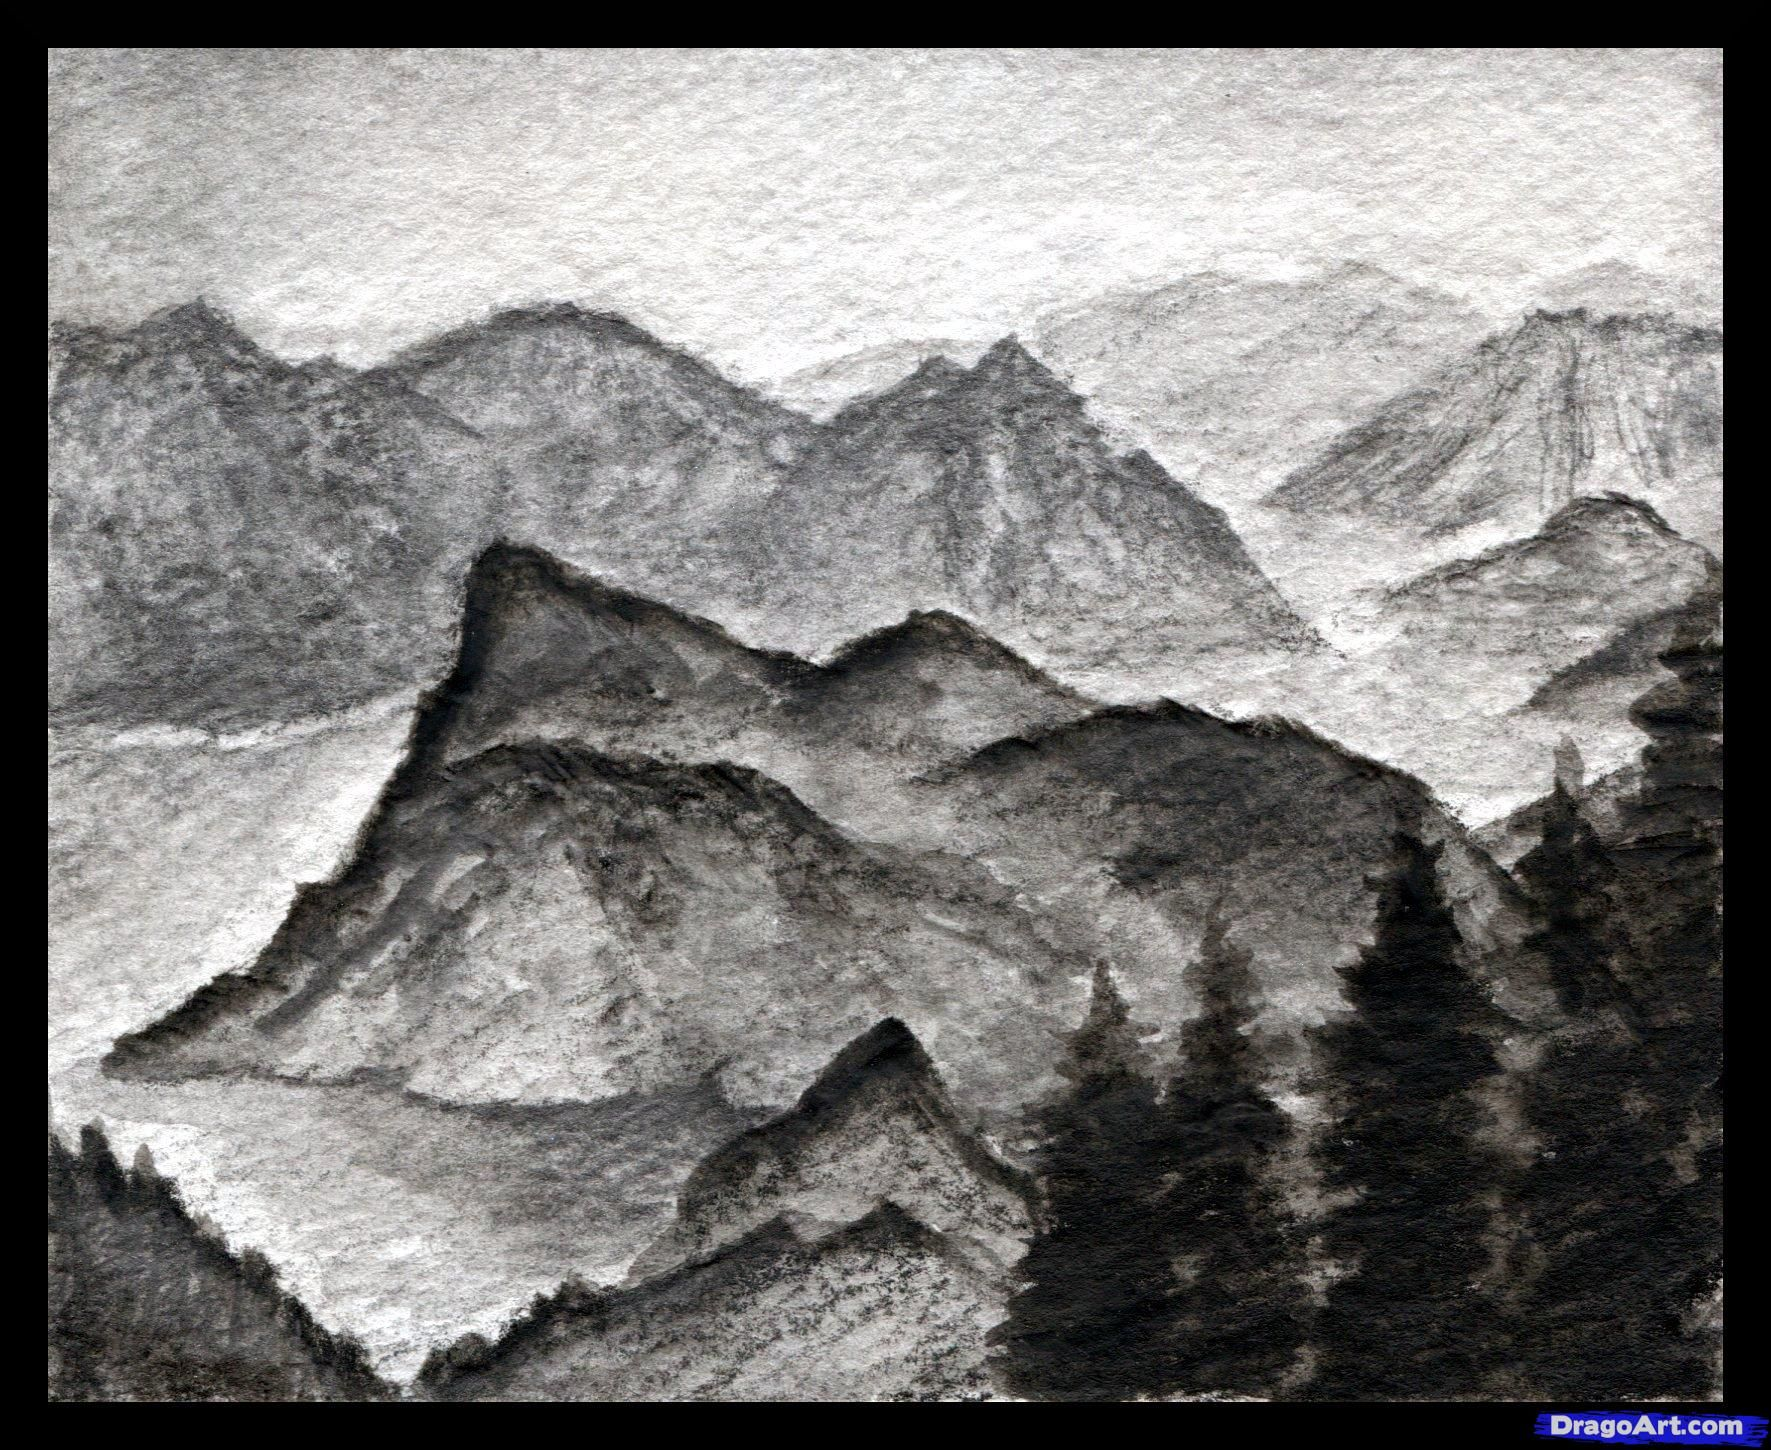 How To Draw A Realistic Landscape Draw Realistic Mountains By Finalprodigy Mountain Sketch Sketches Drawings